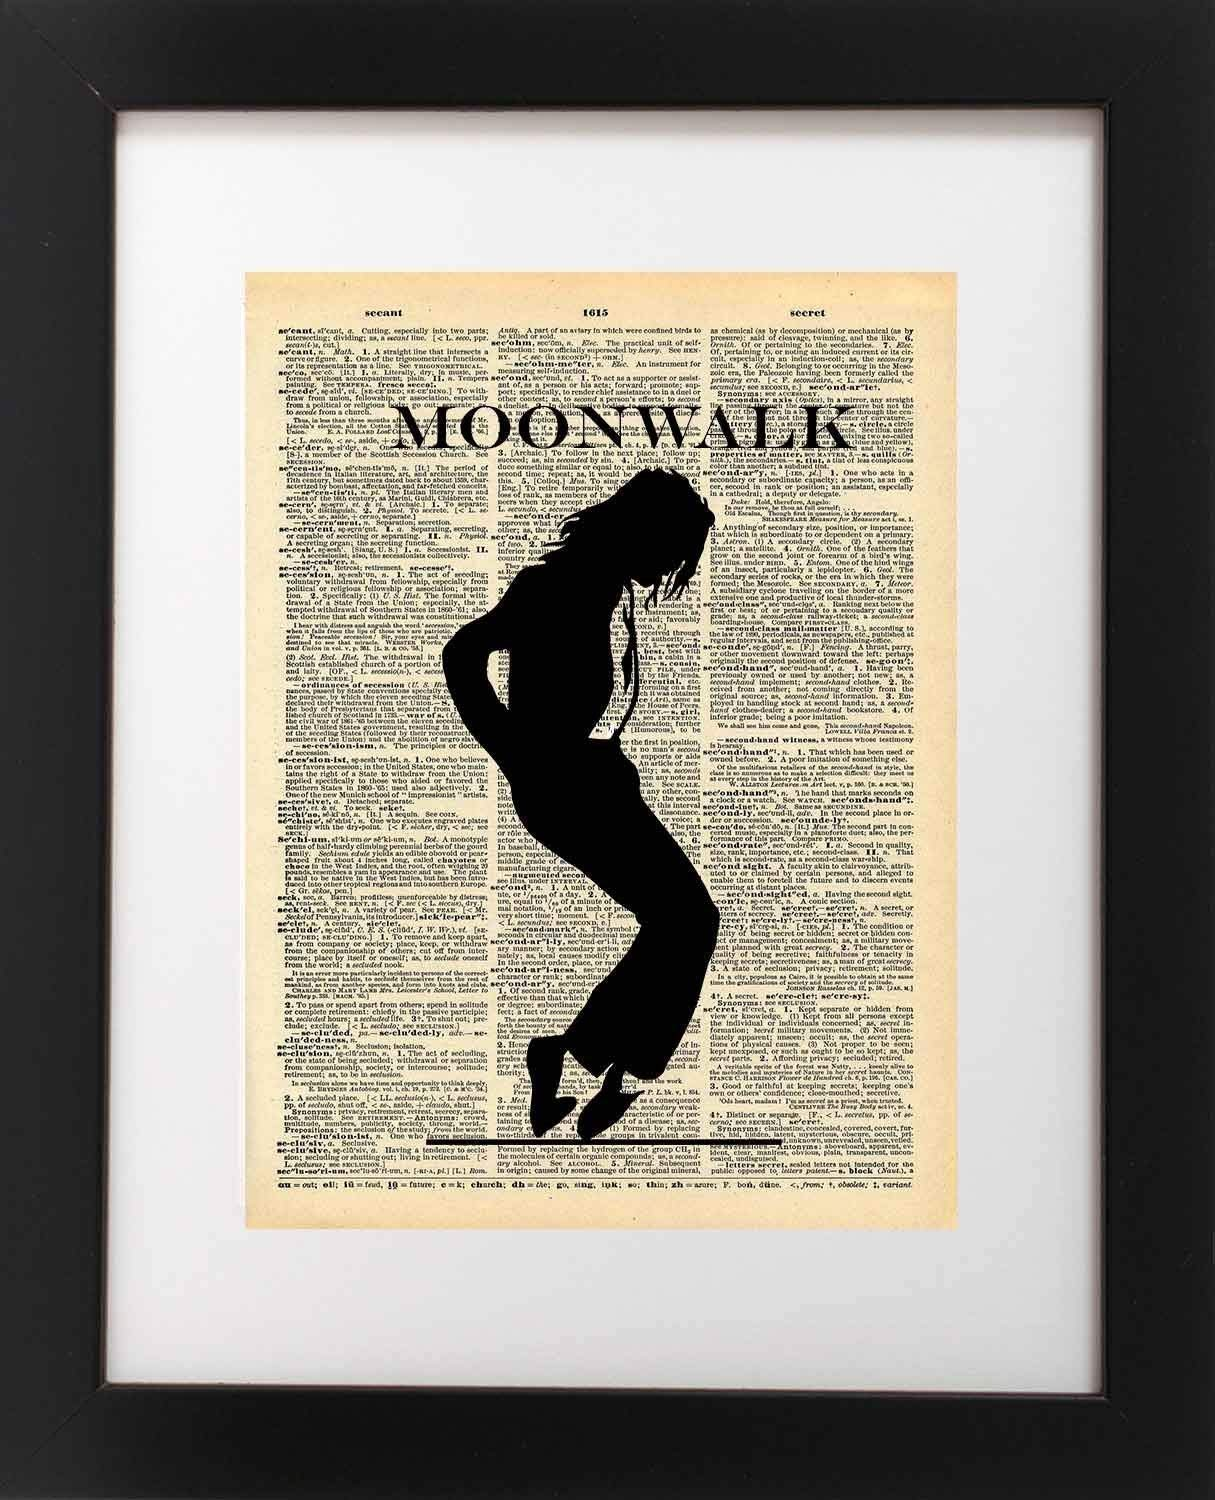 Michael Jackson Vintage Art - Moonwalk - Vintage Dictionary Print 8x10 inch Home Vintage Art Abstract Prints Wall Art for Home Decor Wall Decorations For Living Room Bedroom Office Ready-to-Frame